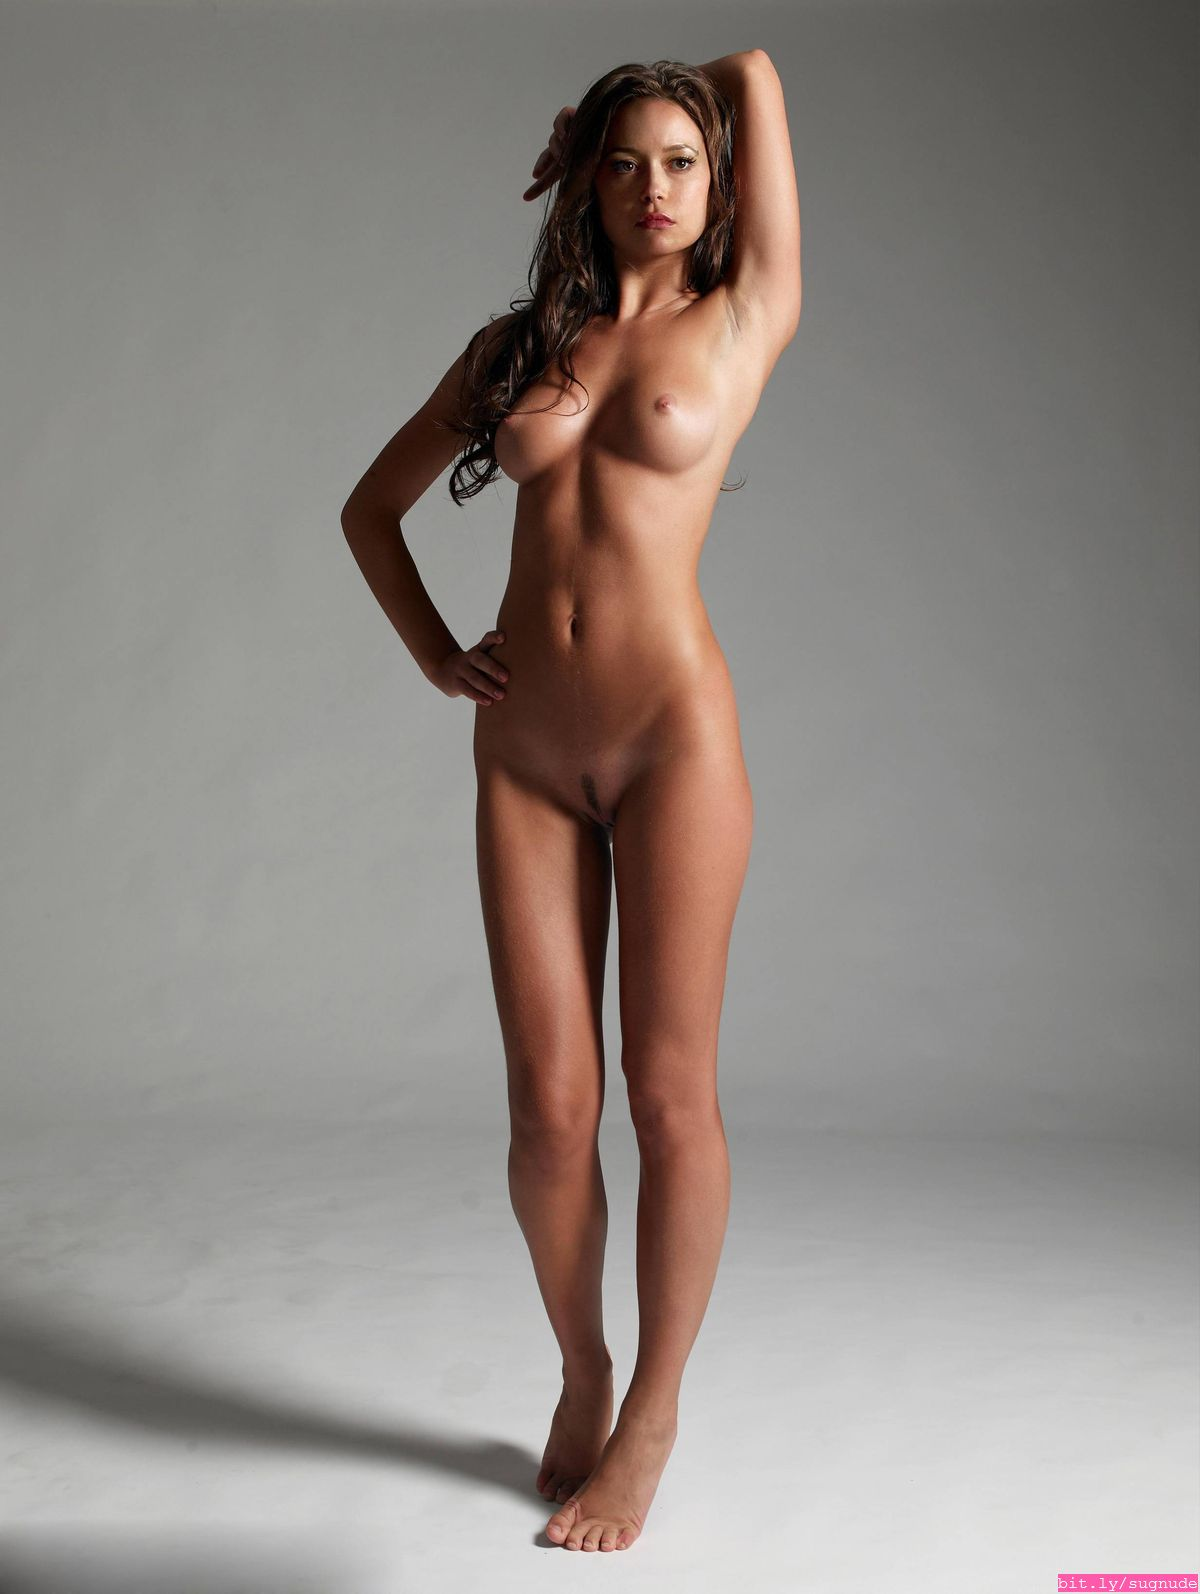 Amy lynn turner nude